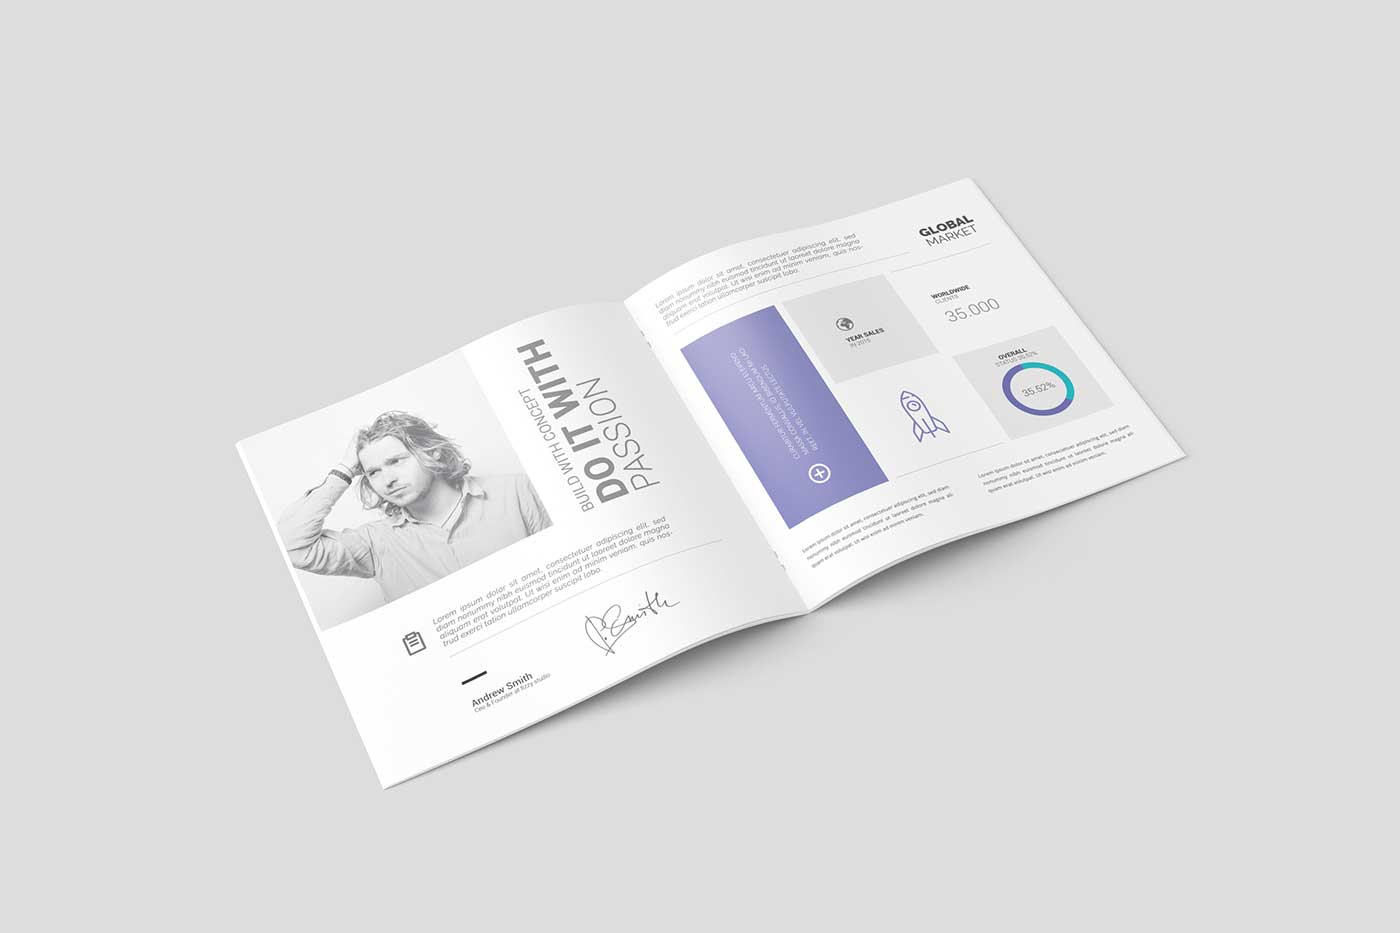 Free-Amazing-Square-Brochure-Mock-Up-Psd